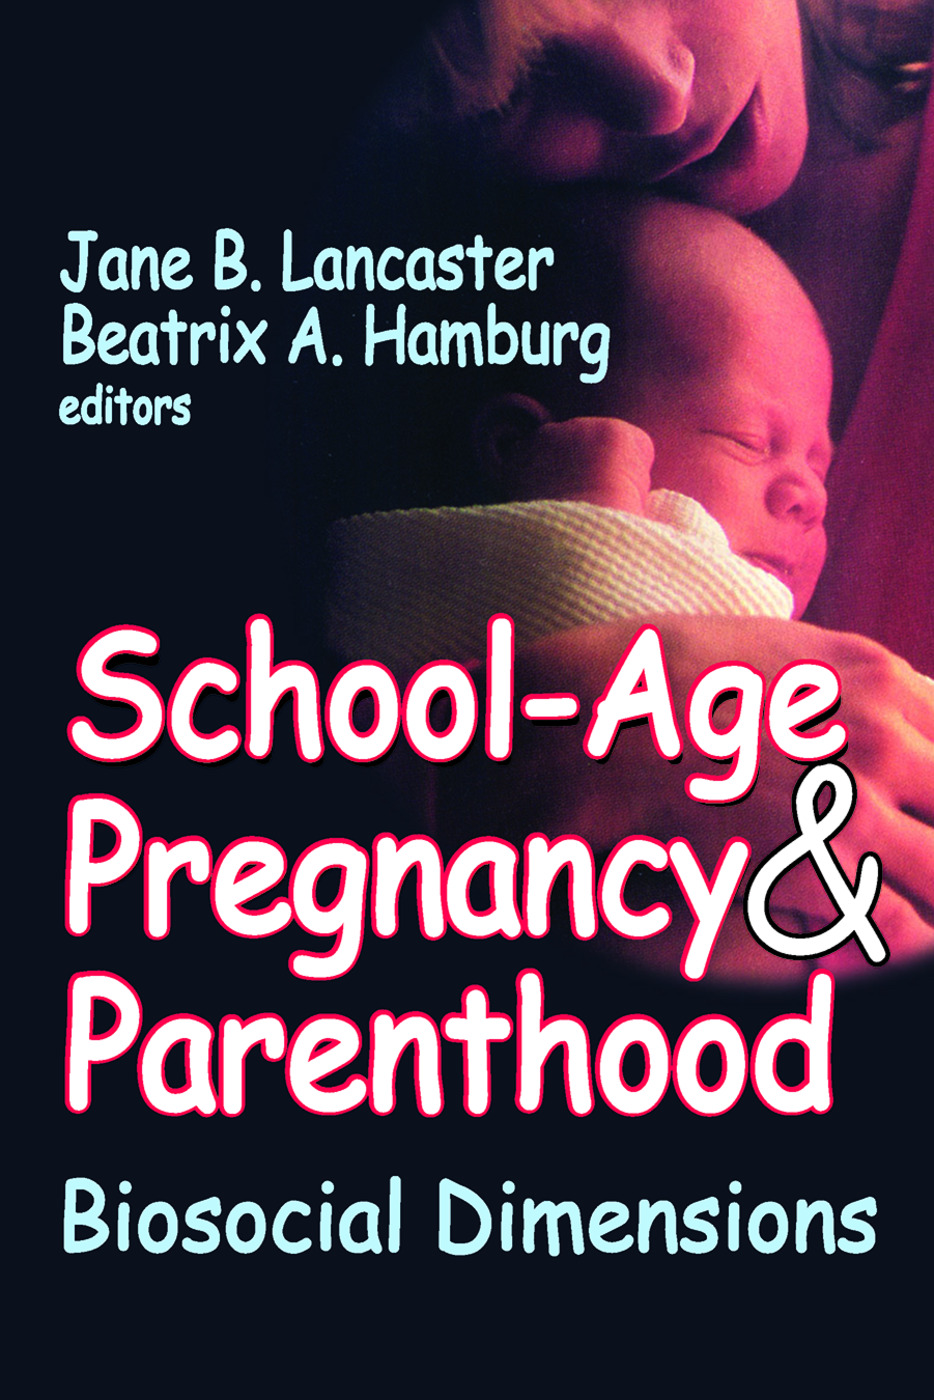 School-age Pregnancy and Parenthood: Biosocial Dimensions, 1st Edition (Paperback) book cover